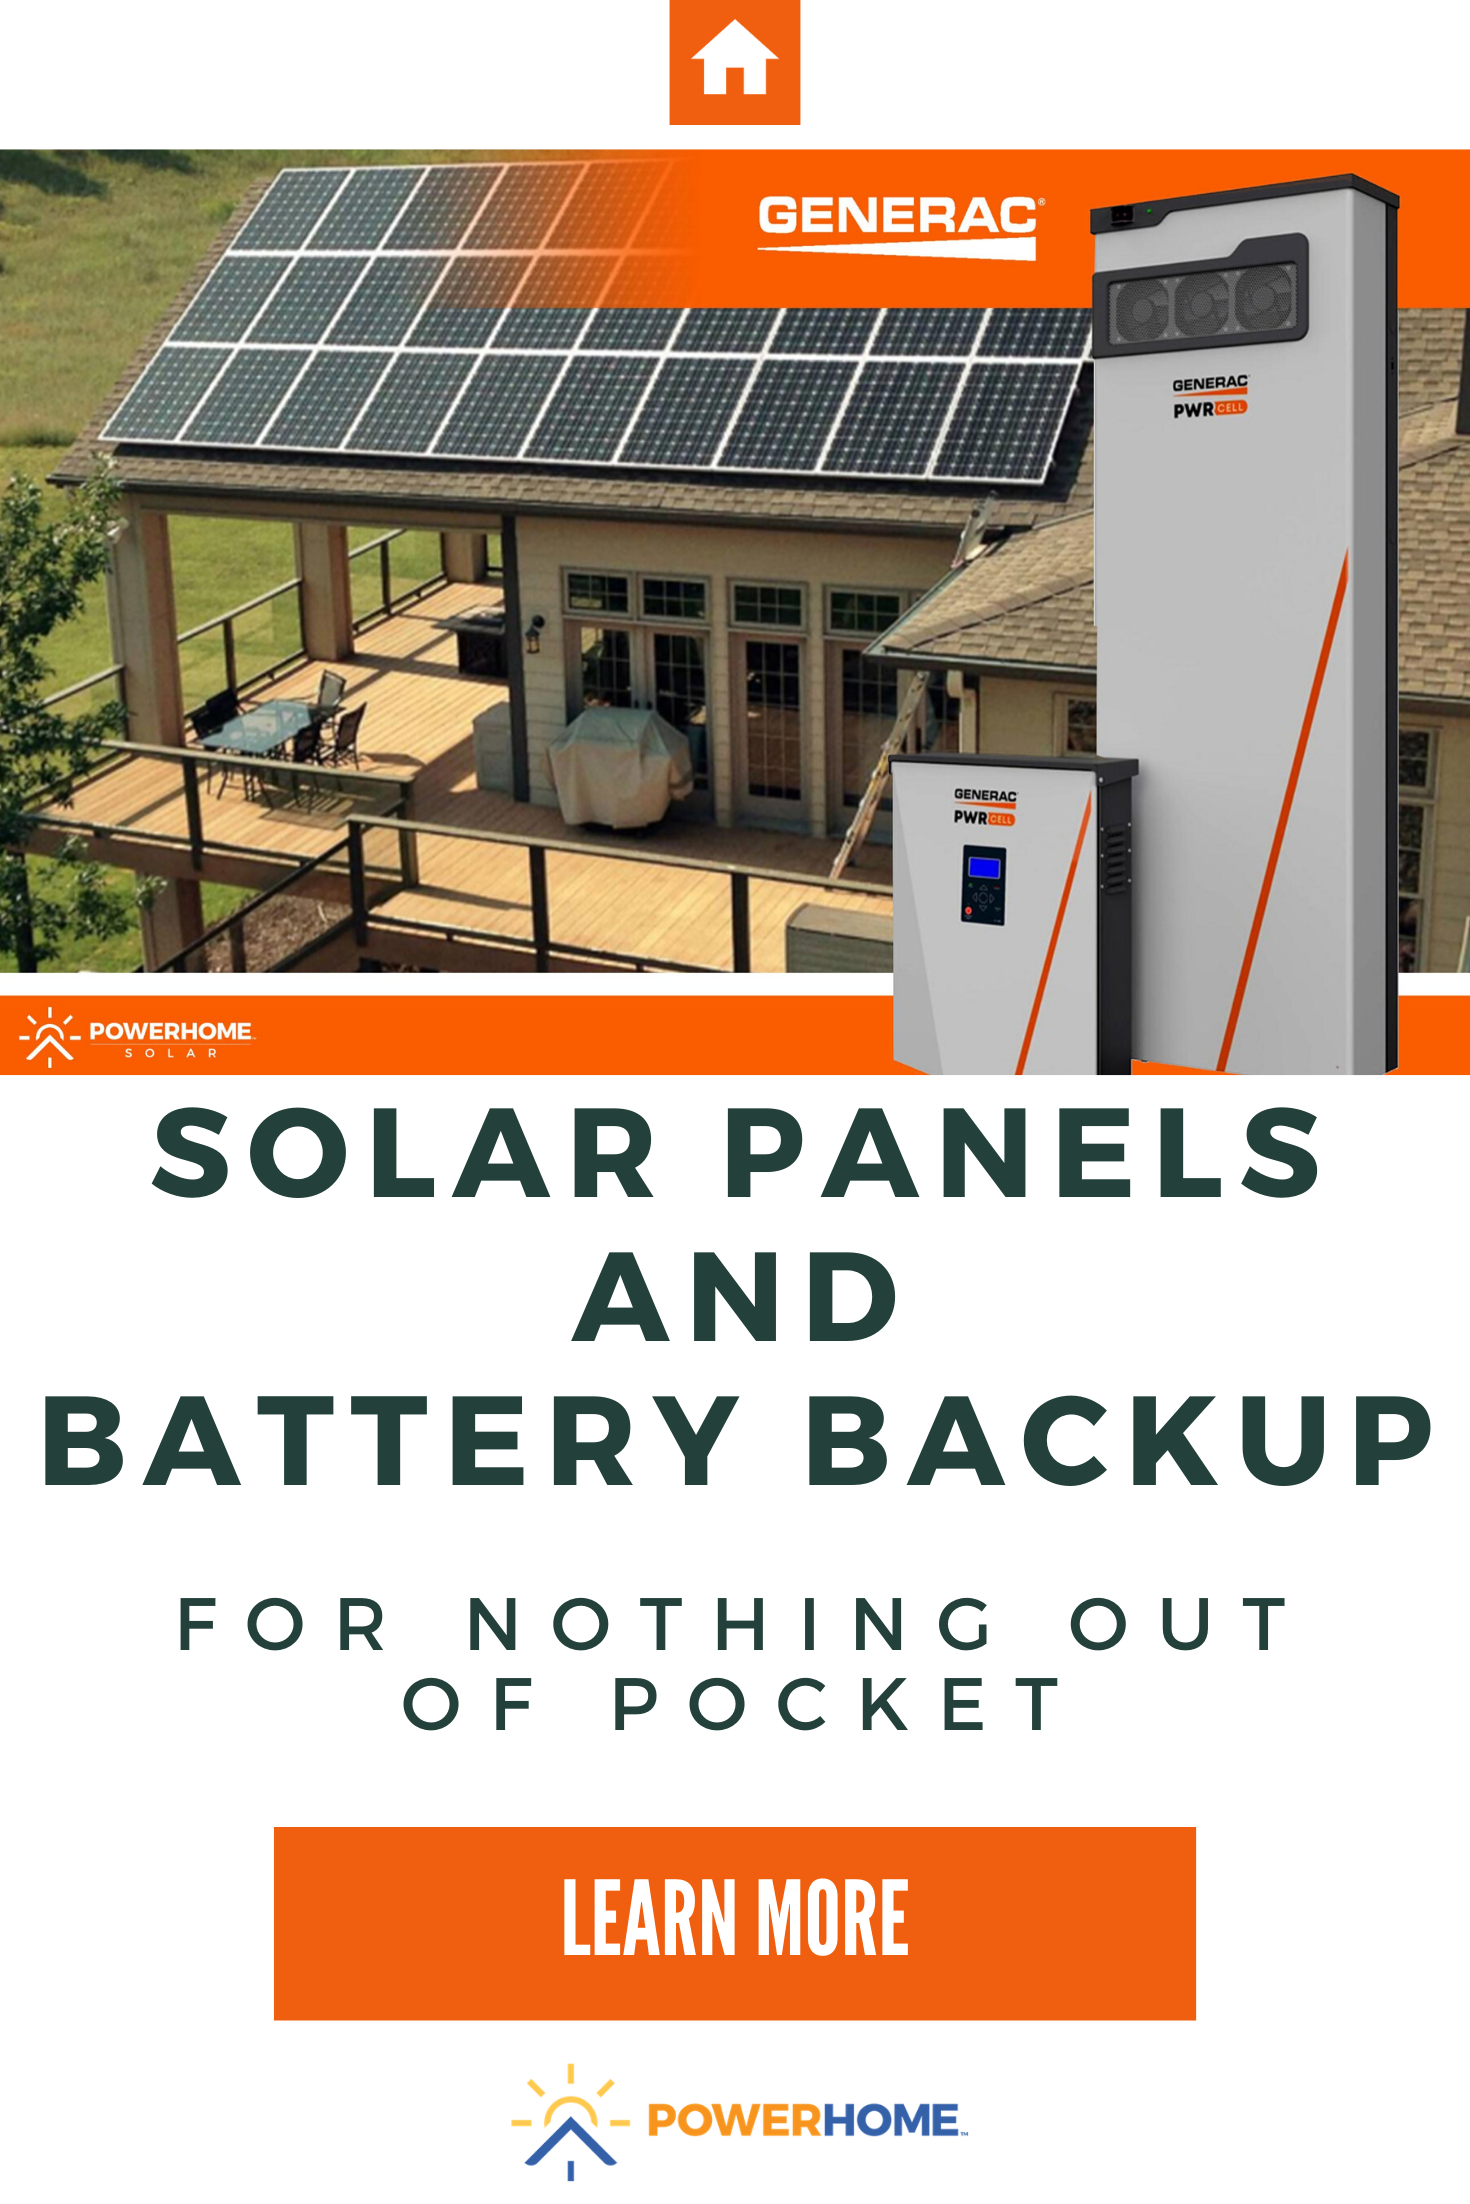 Get Solar Panels And Battery Backup For 0 Out Of Pocket In 2020 Solar Panels Solar Solar Panels For Home